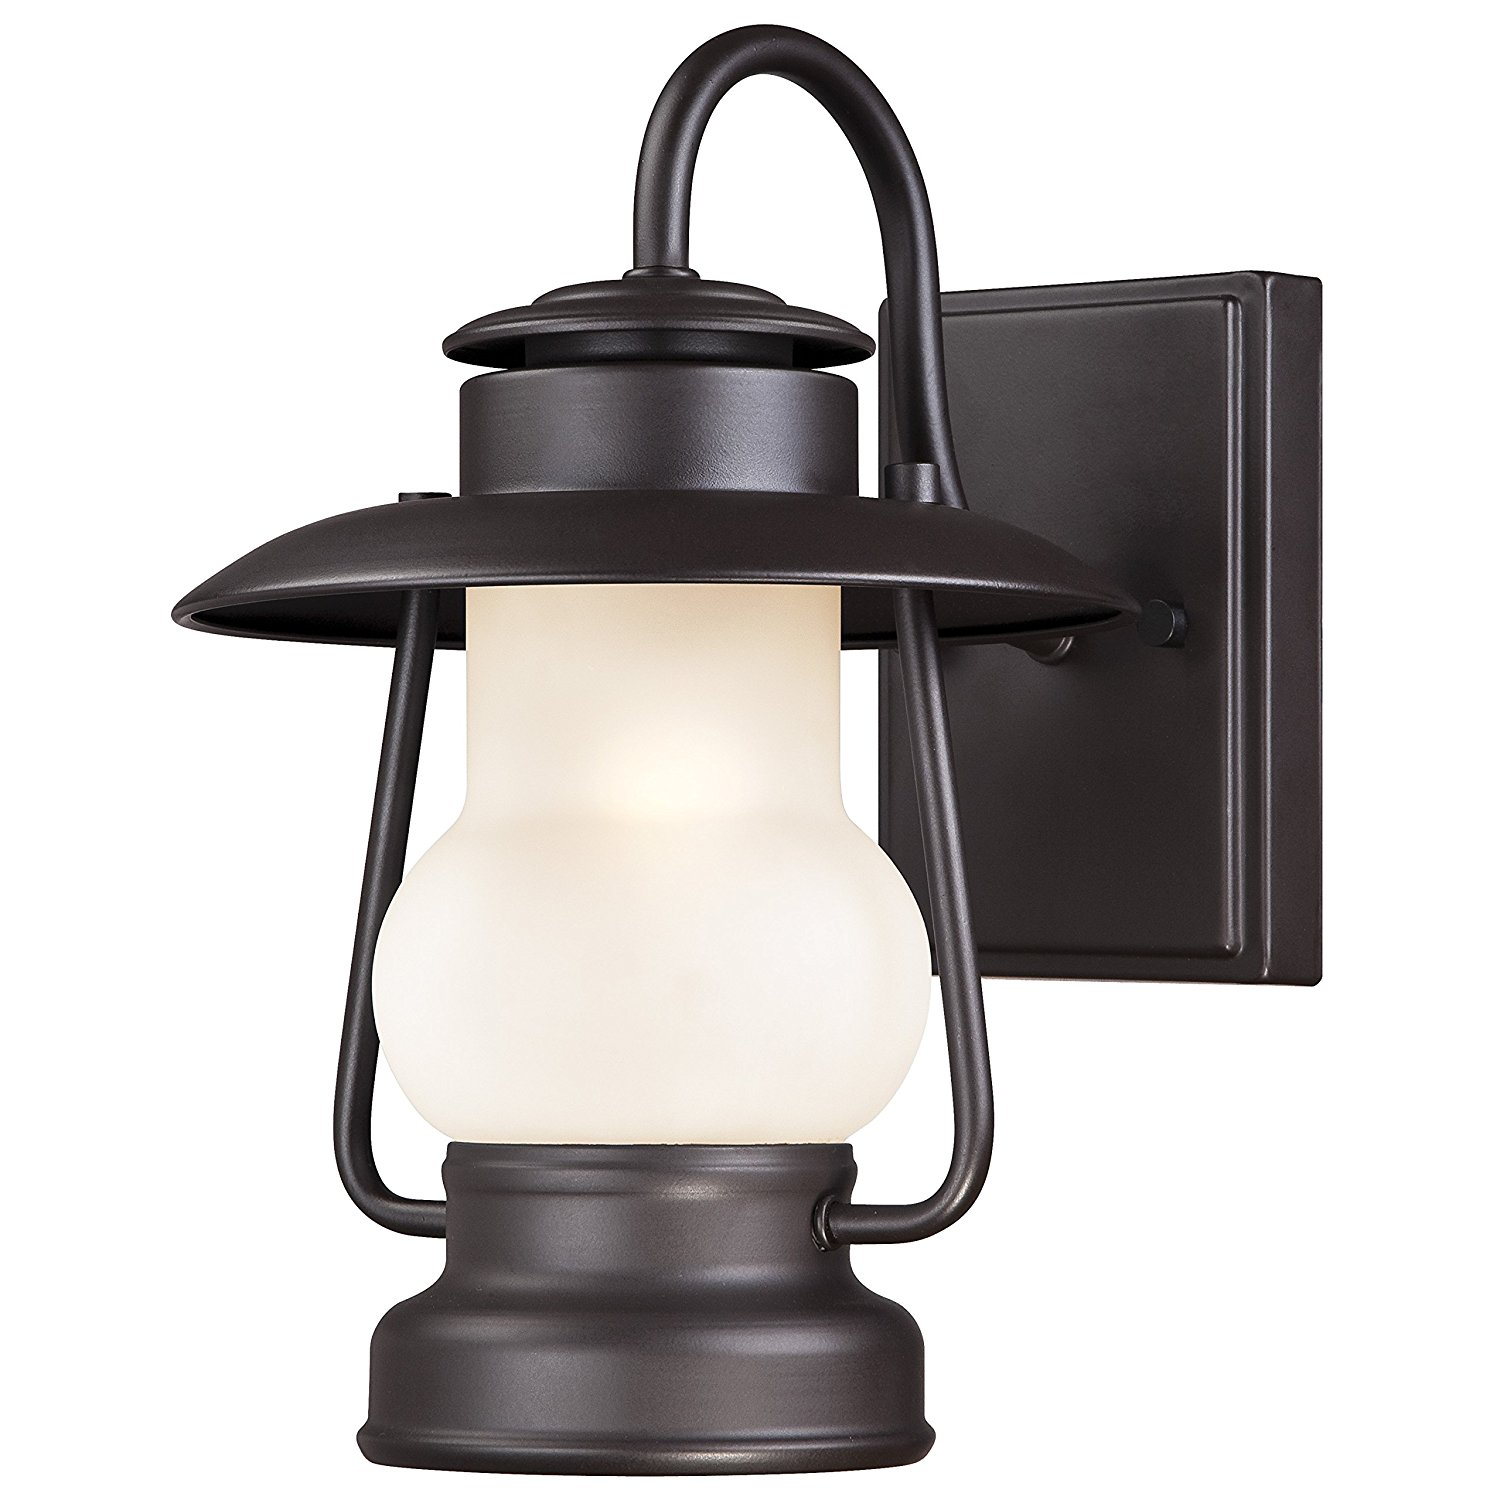 6204200 Santa Fe 1 Light Outdoor Wall Lantern, Weathered Bronze, One-light outdoor Rustic wall lantern is perfect for use in outdoor areas such as.., By Westinghouse